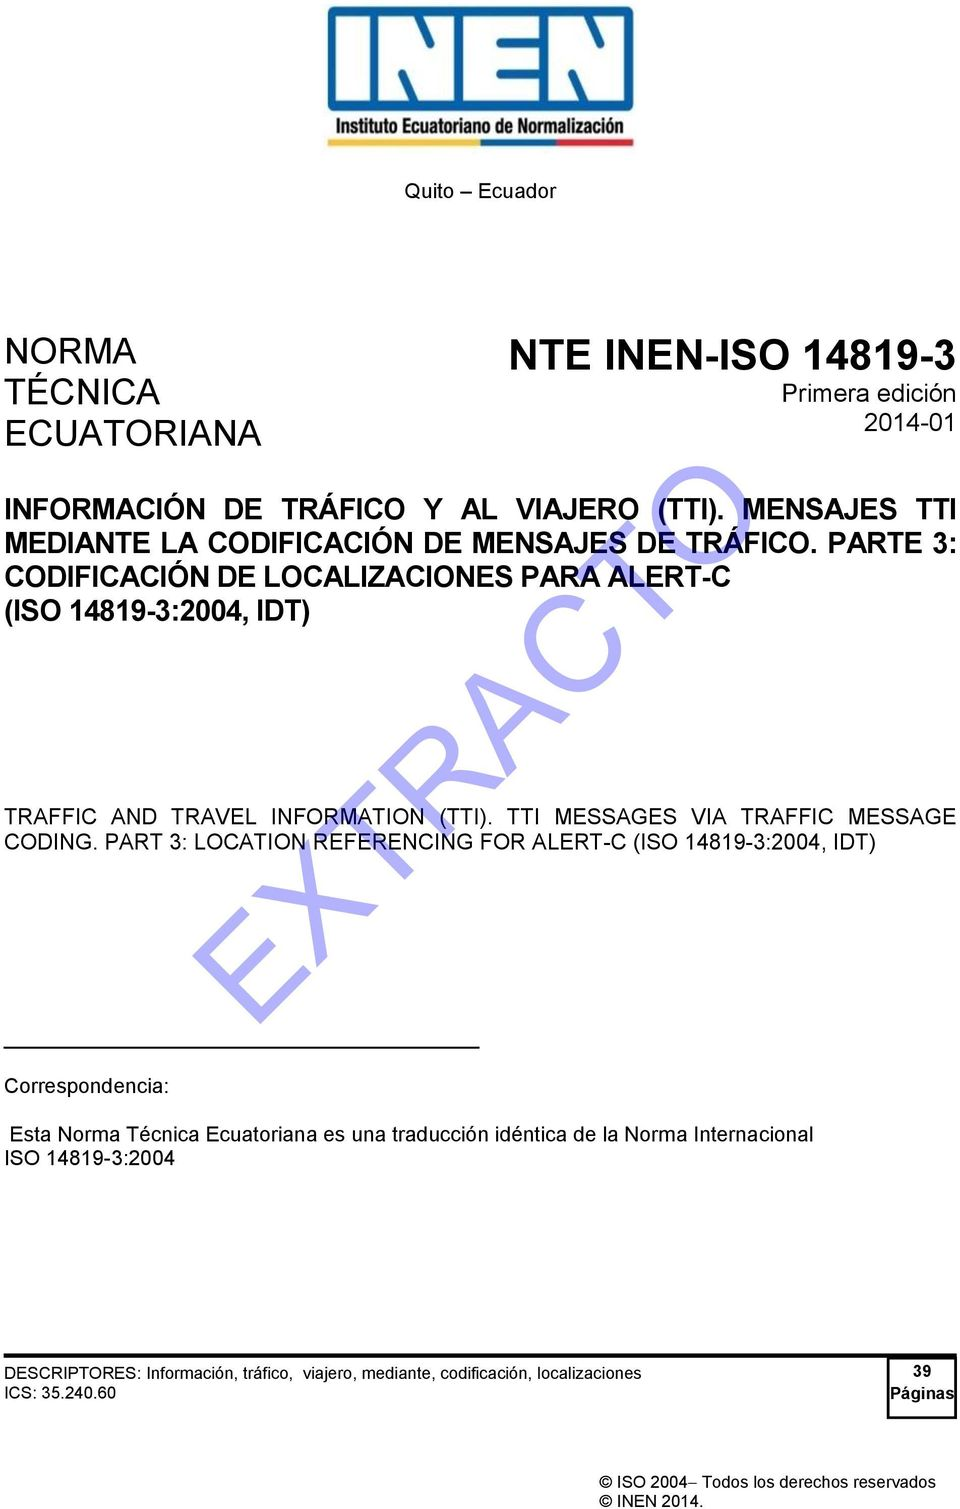 PARTE 3: CODIFICACIÓN DE LOCALIZACIONES PARA ALERT-C (ISO 14819-3:2004, IDT) TRAFFIC AND TRAVEL INFORMATION (TTI). TTI MESSAGES VIA TRAFFIC MESSAGE CODING.